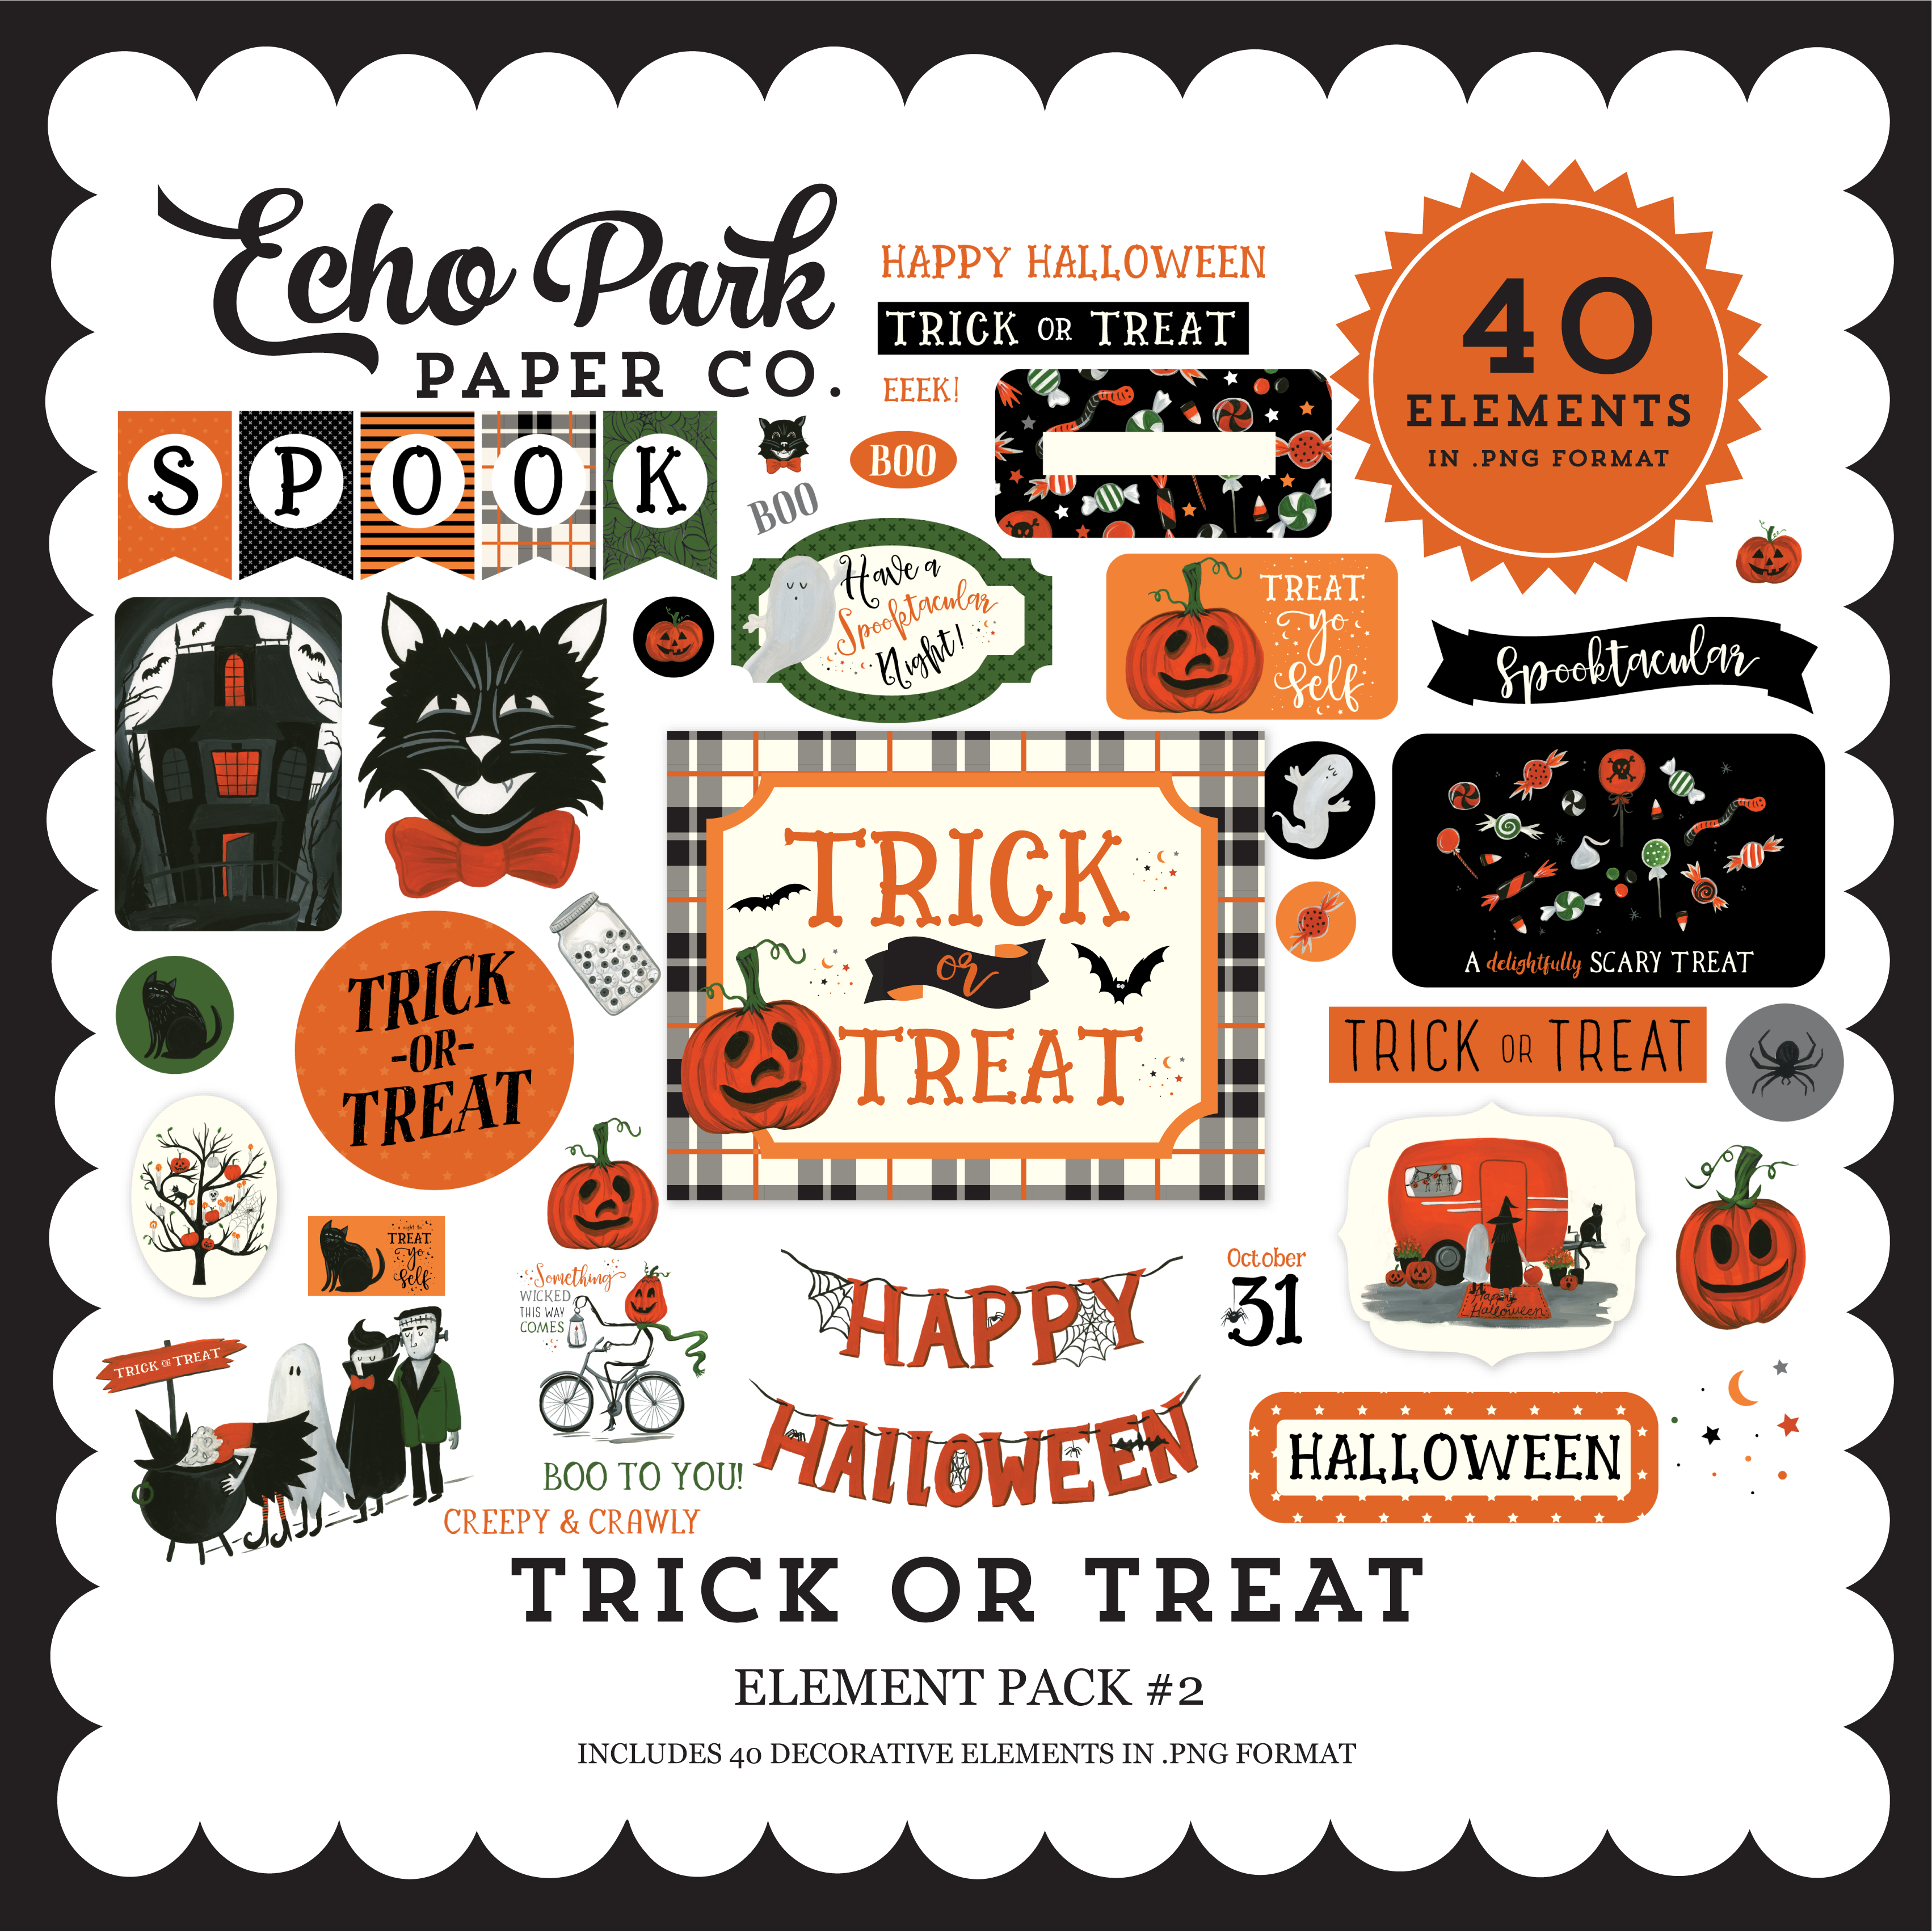 Trick or Treat Element Pack #2